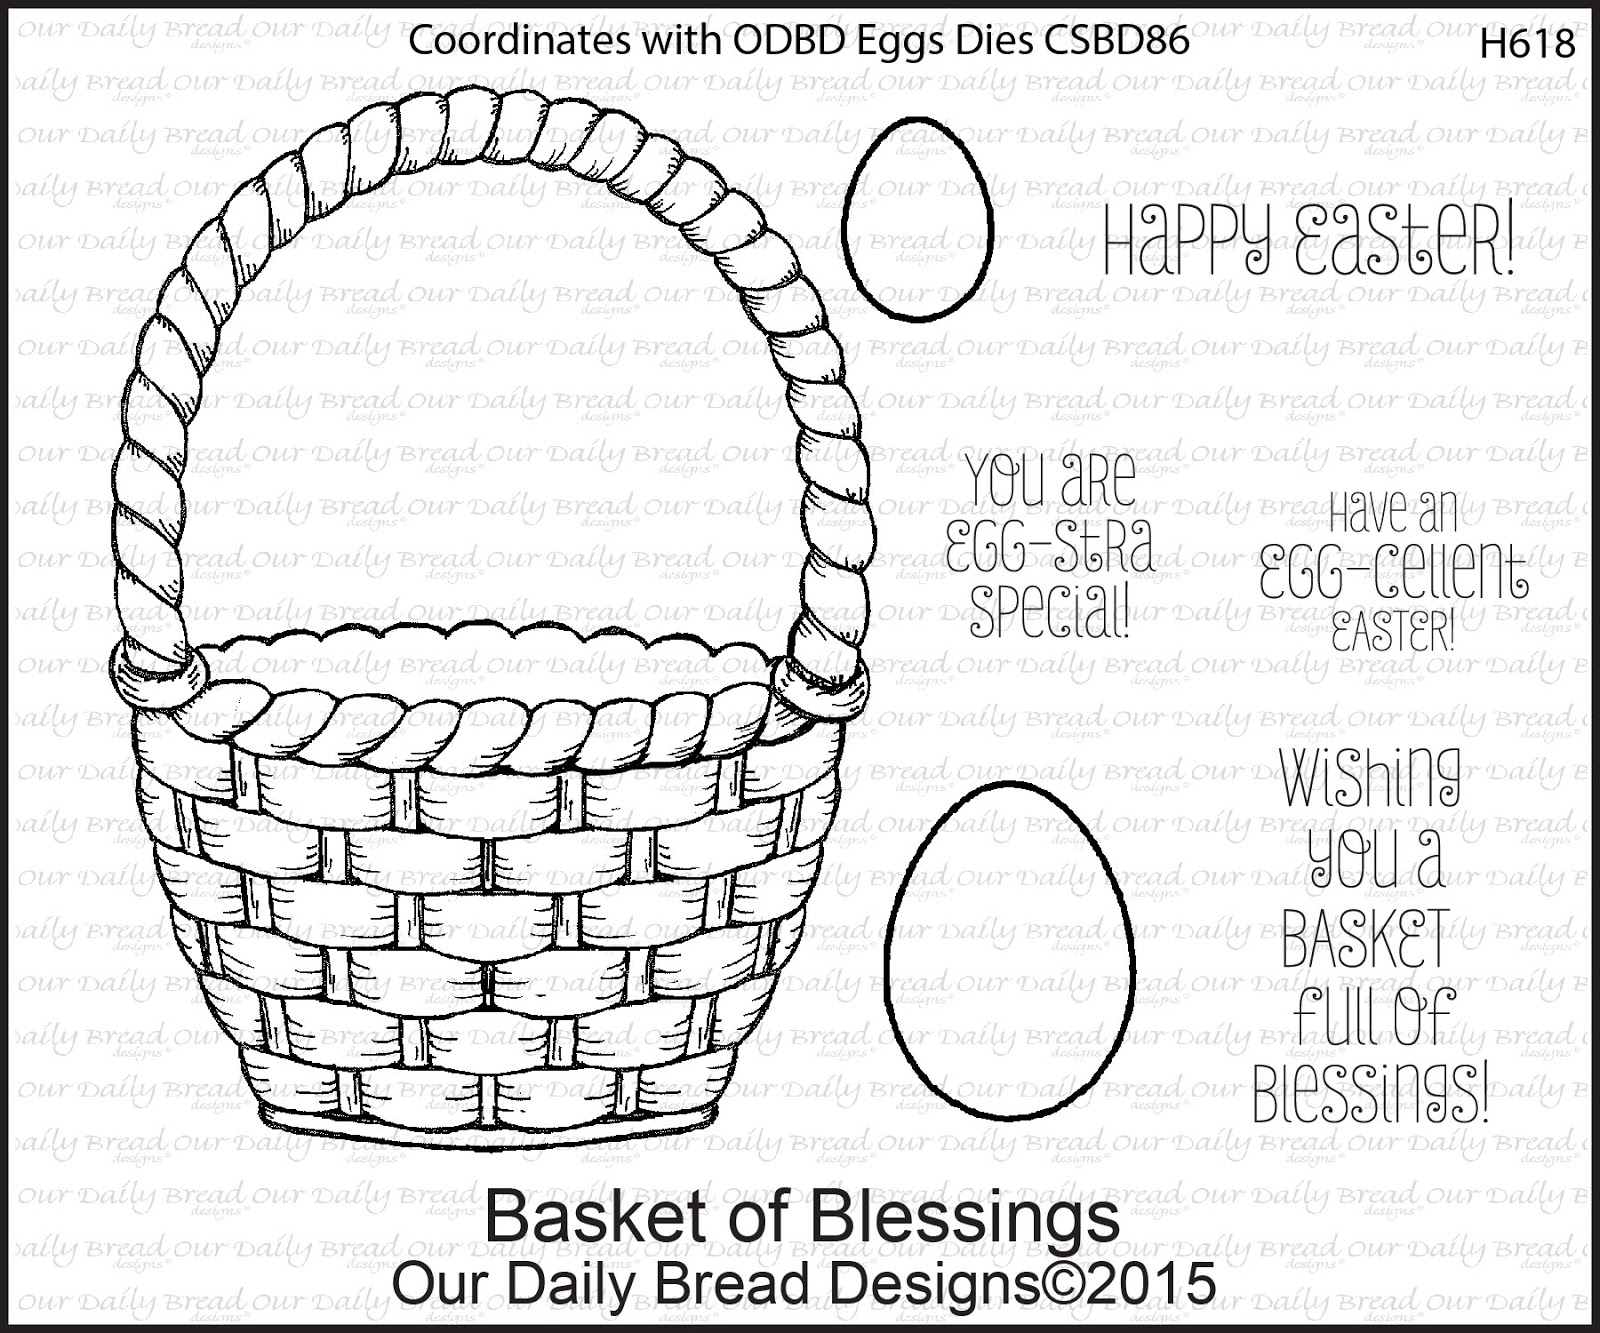 Stamps - Our Daily Bread Designs Basket of Blessings